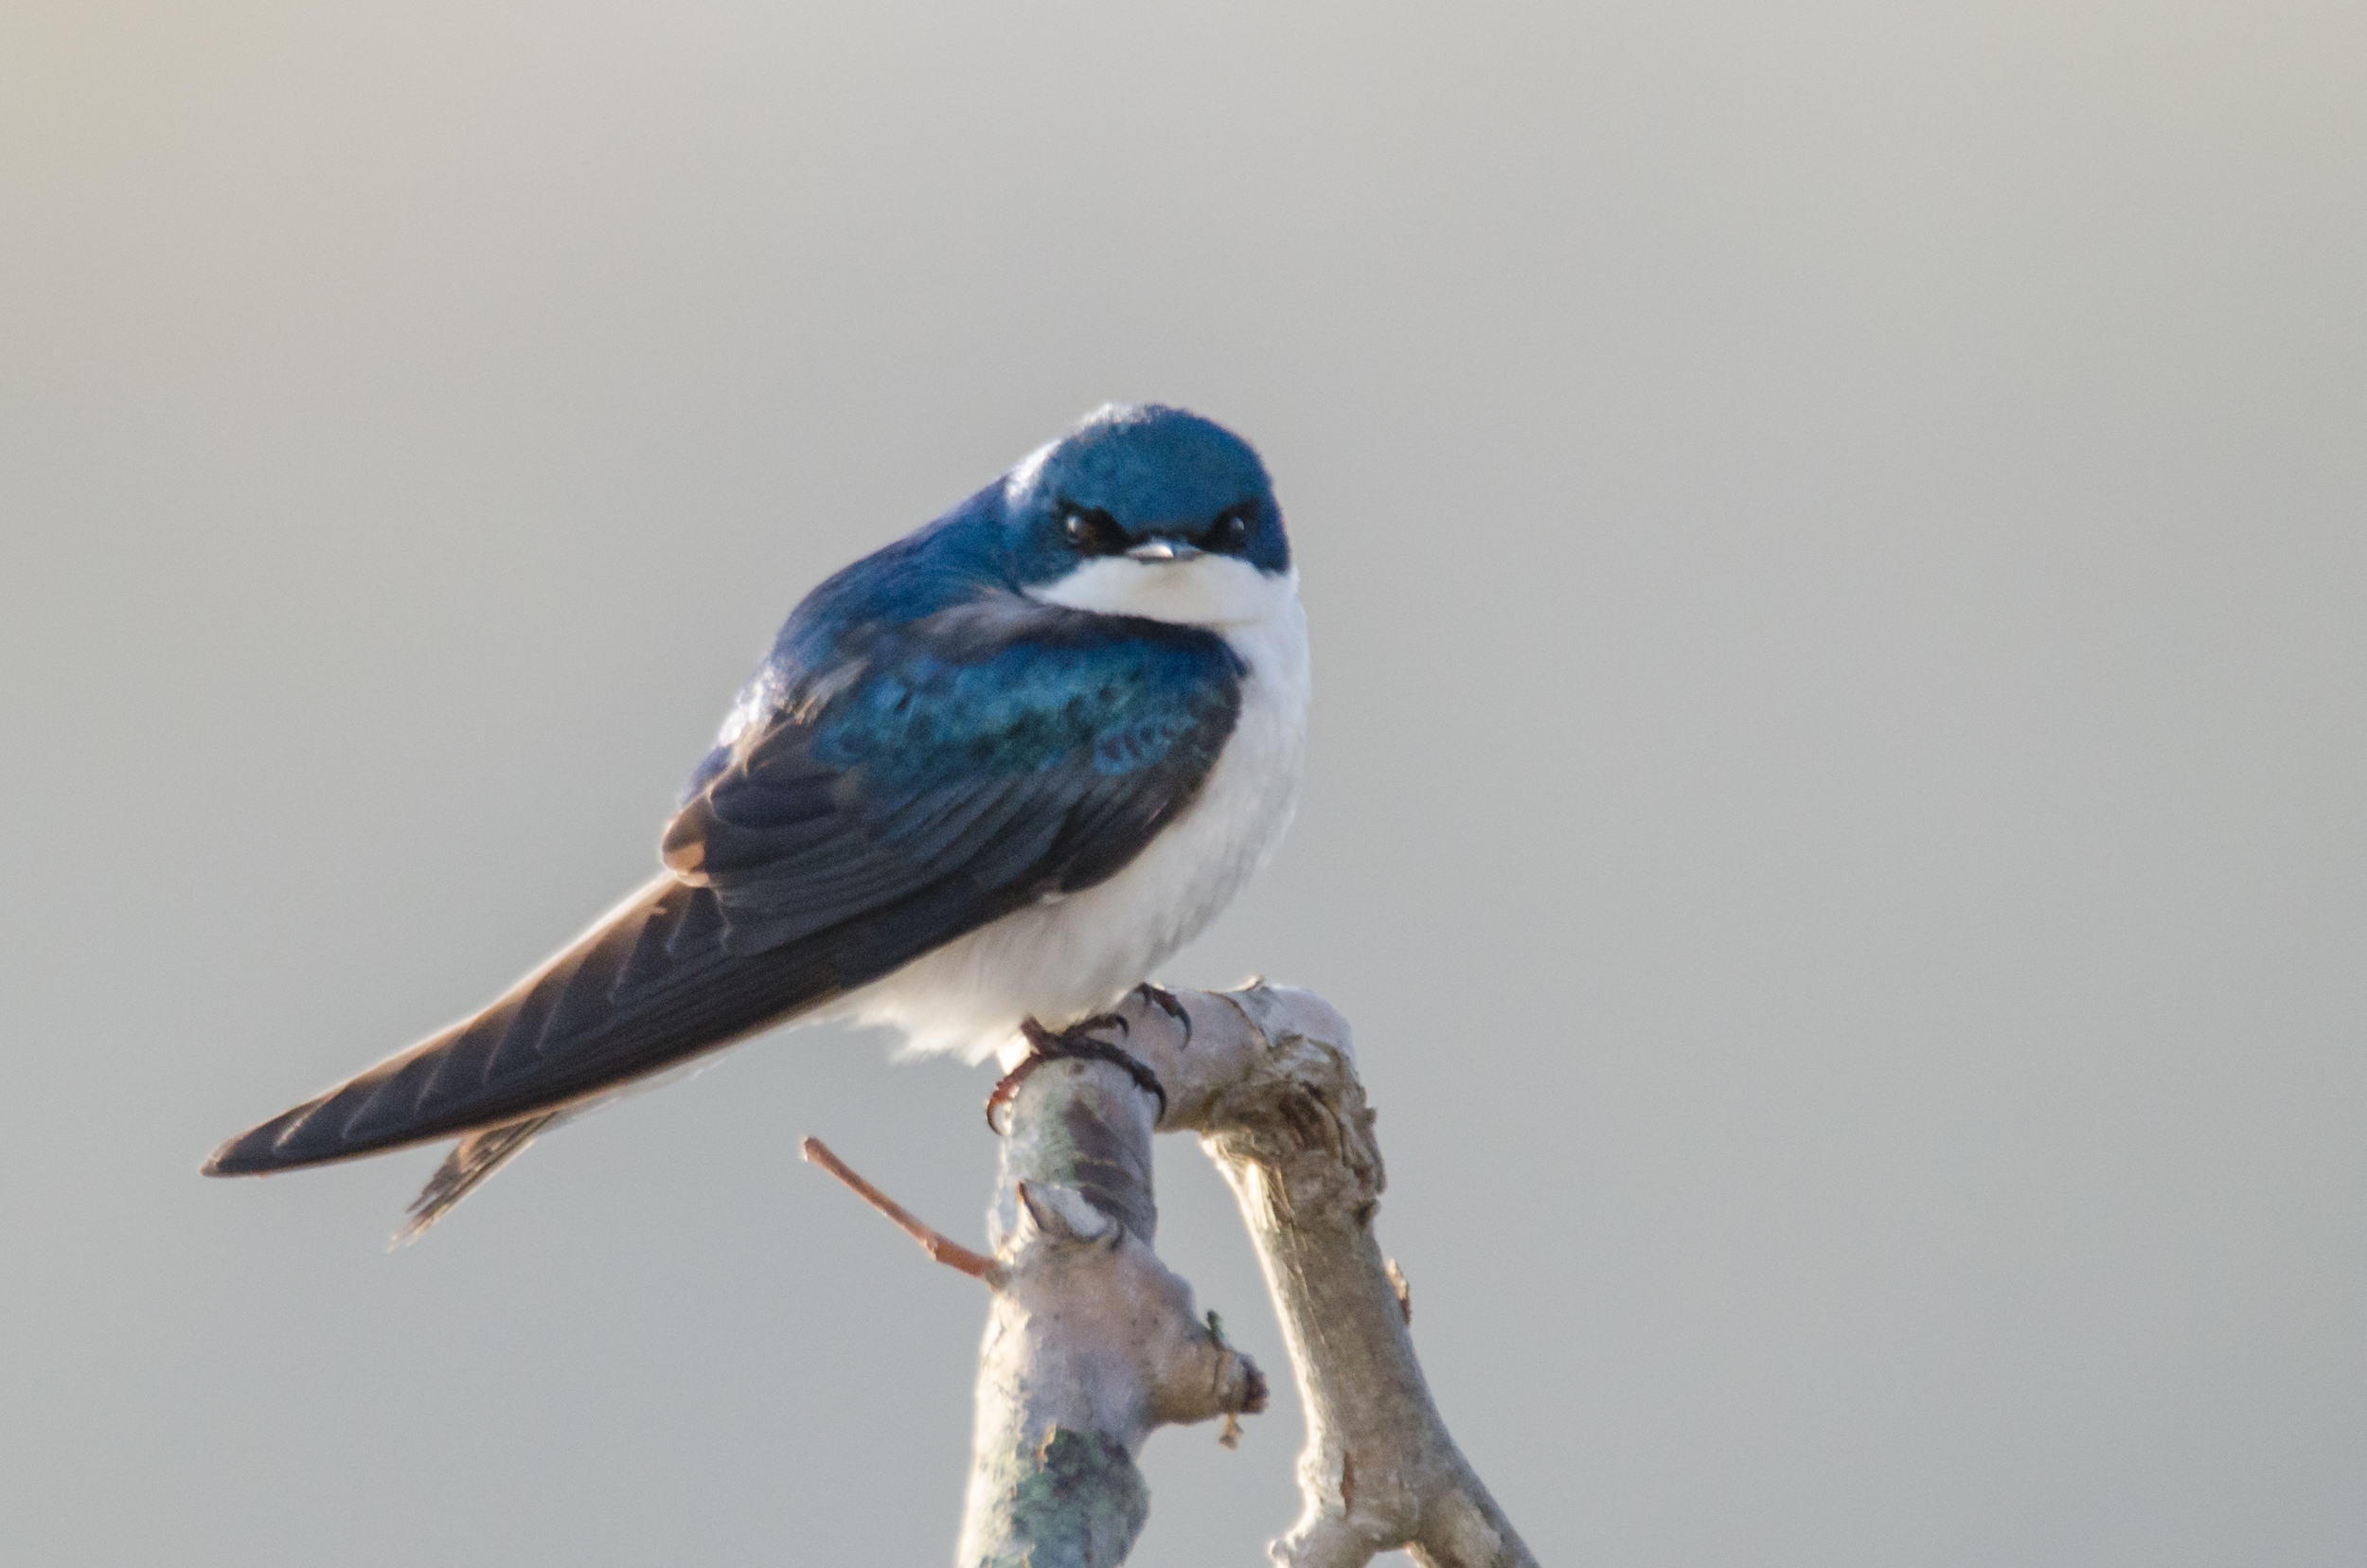 Tree Swallow  ISO 800 600mm f/7.1 1/800 sec